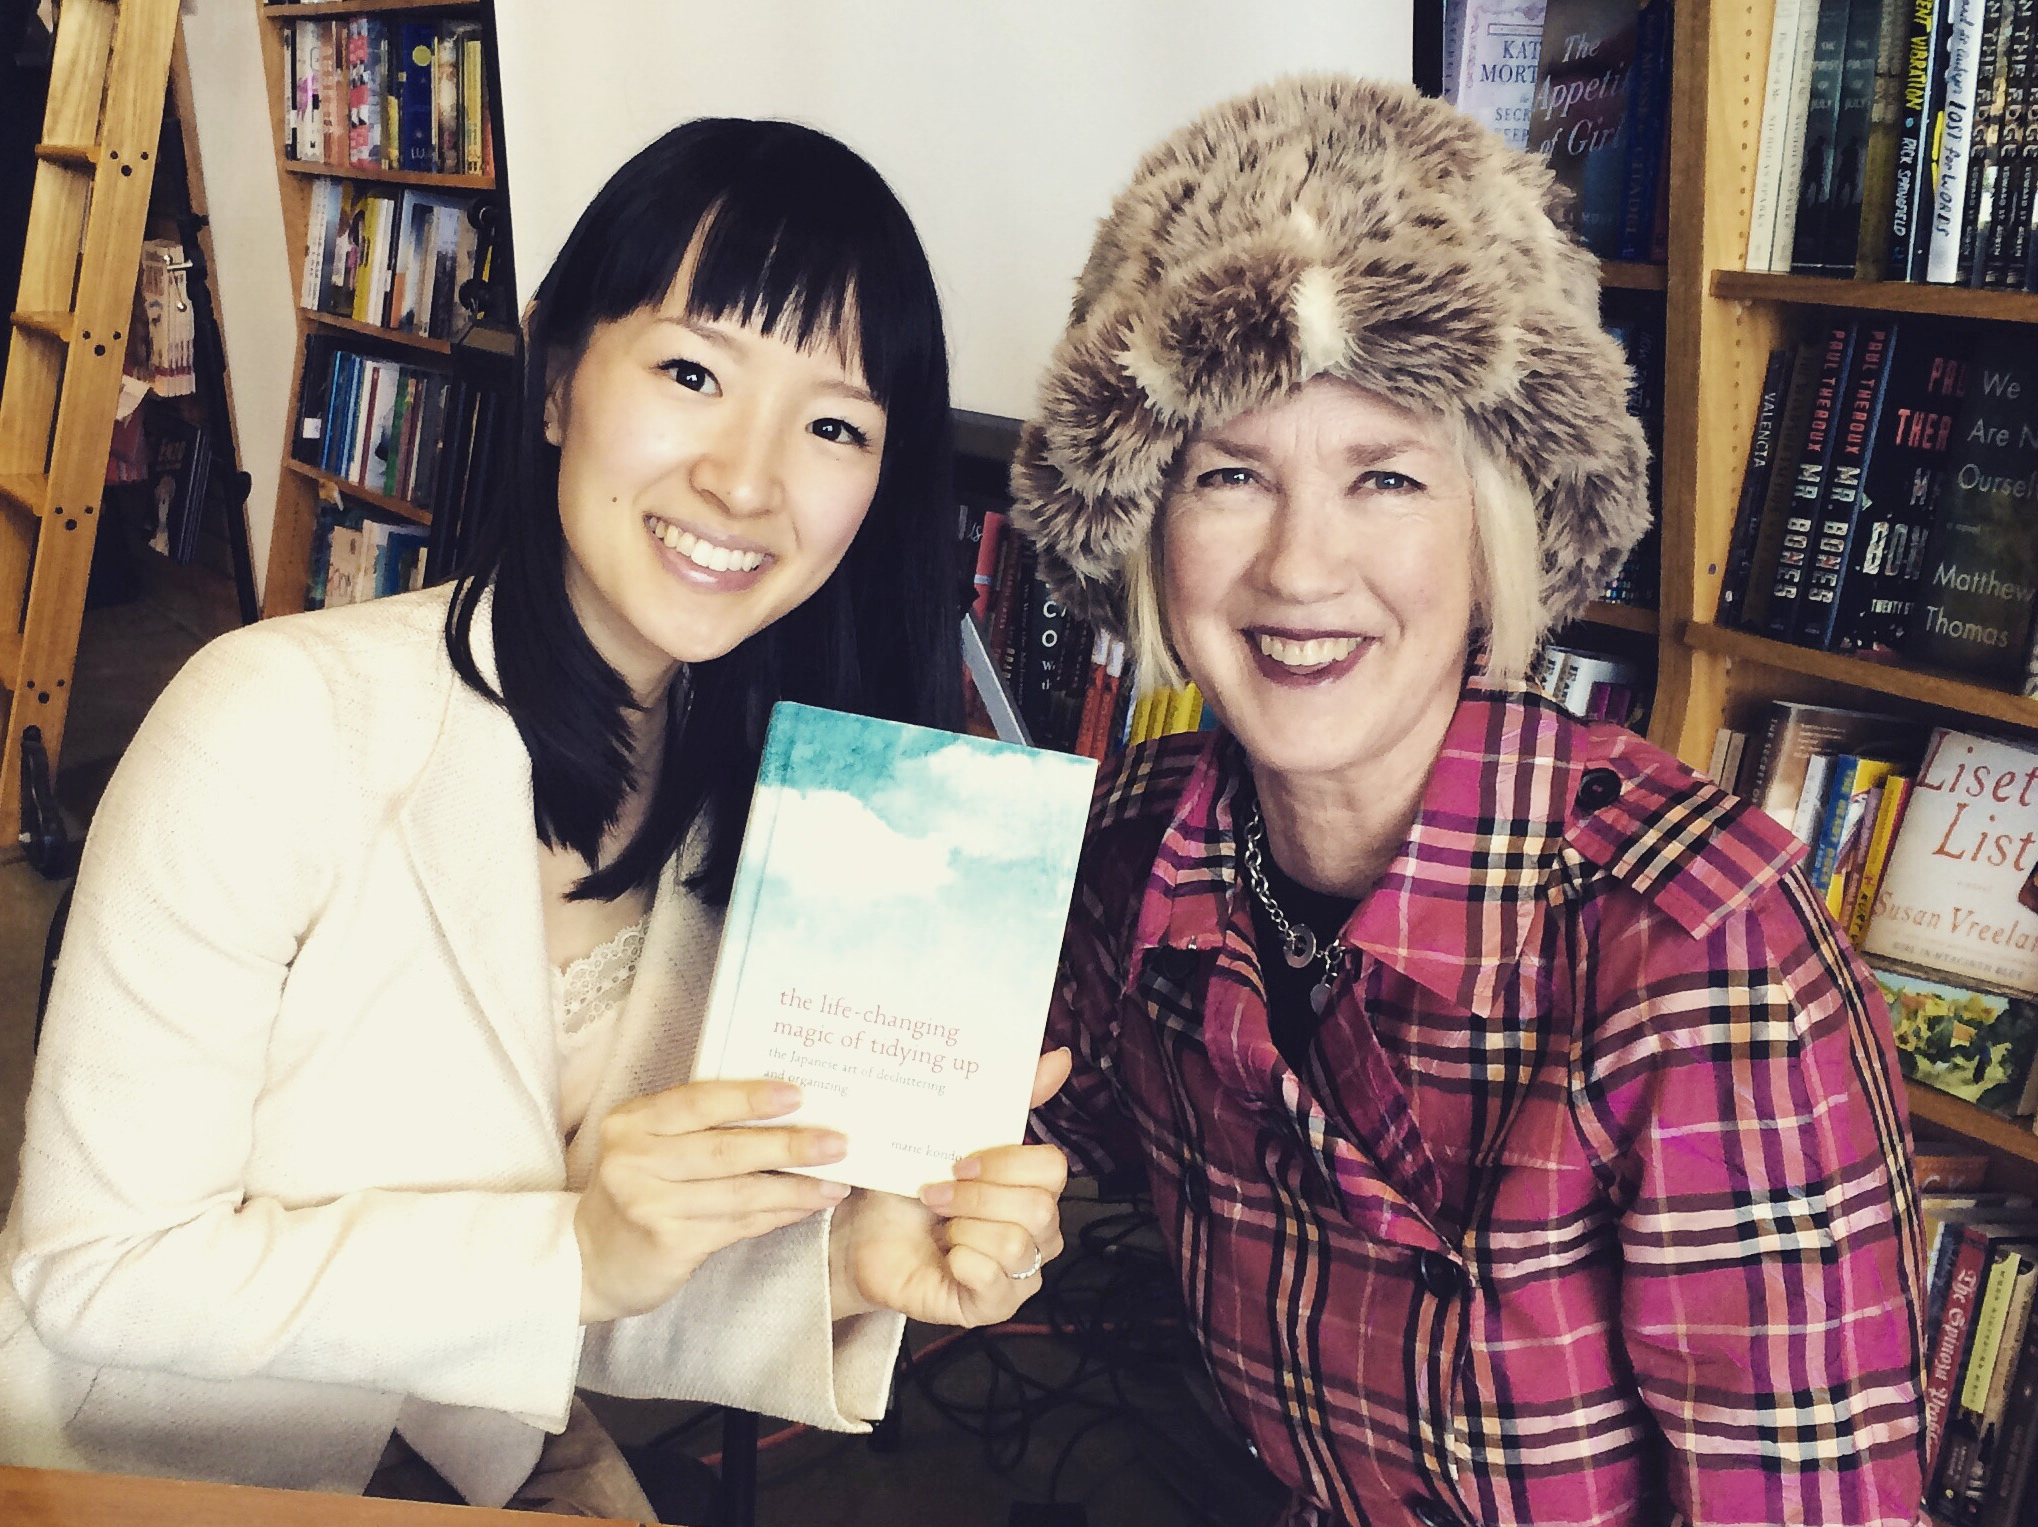 Marie Kondo (left) and Jane Dolan (right), with Marie Kondo's bestelling book   The Life-Changing Magic of Tidying Up